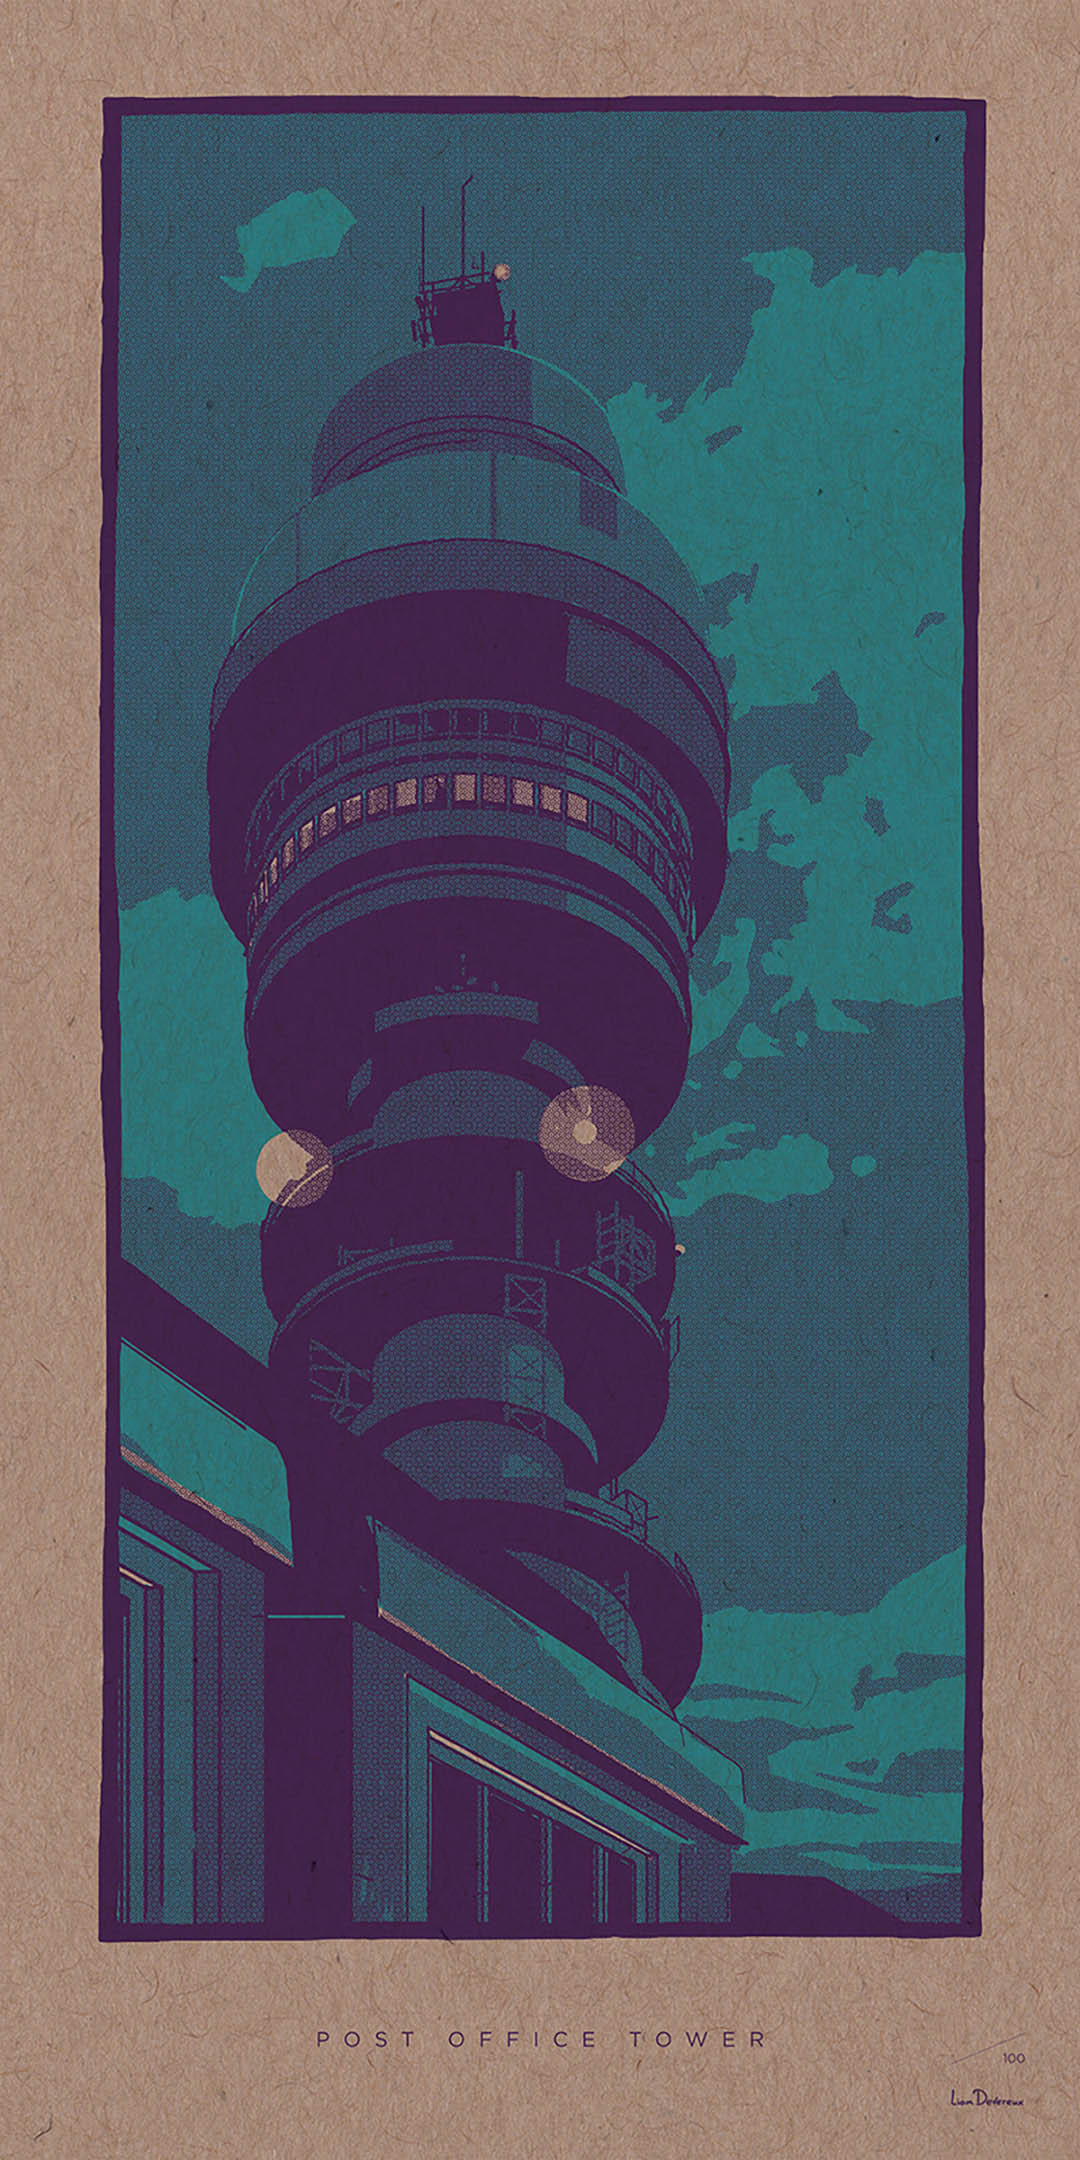 Post Office Tower - Liam Devereux | 30x60mm Giclee print on 450mic recycled Kraft card